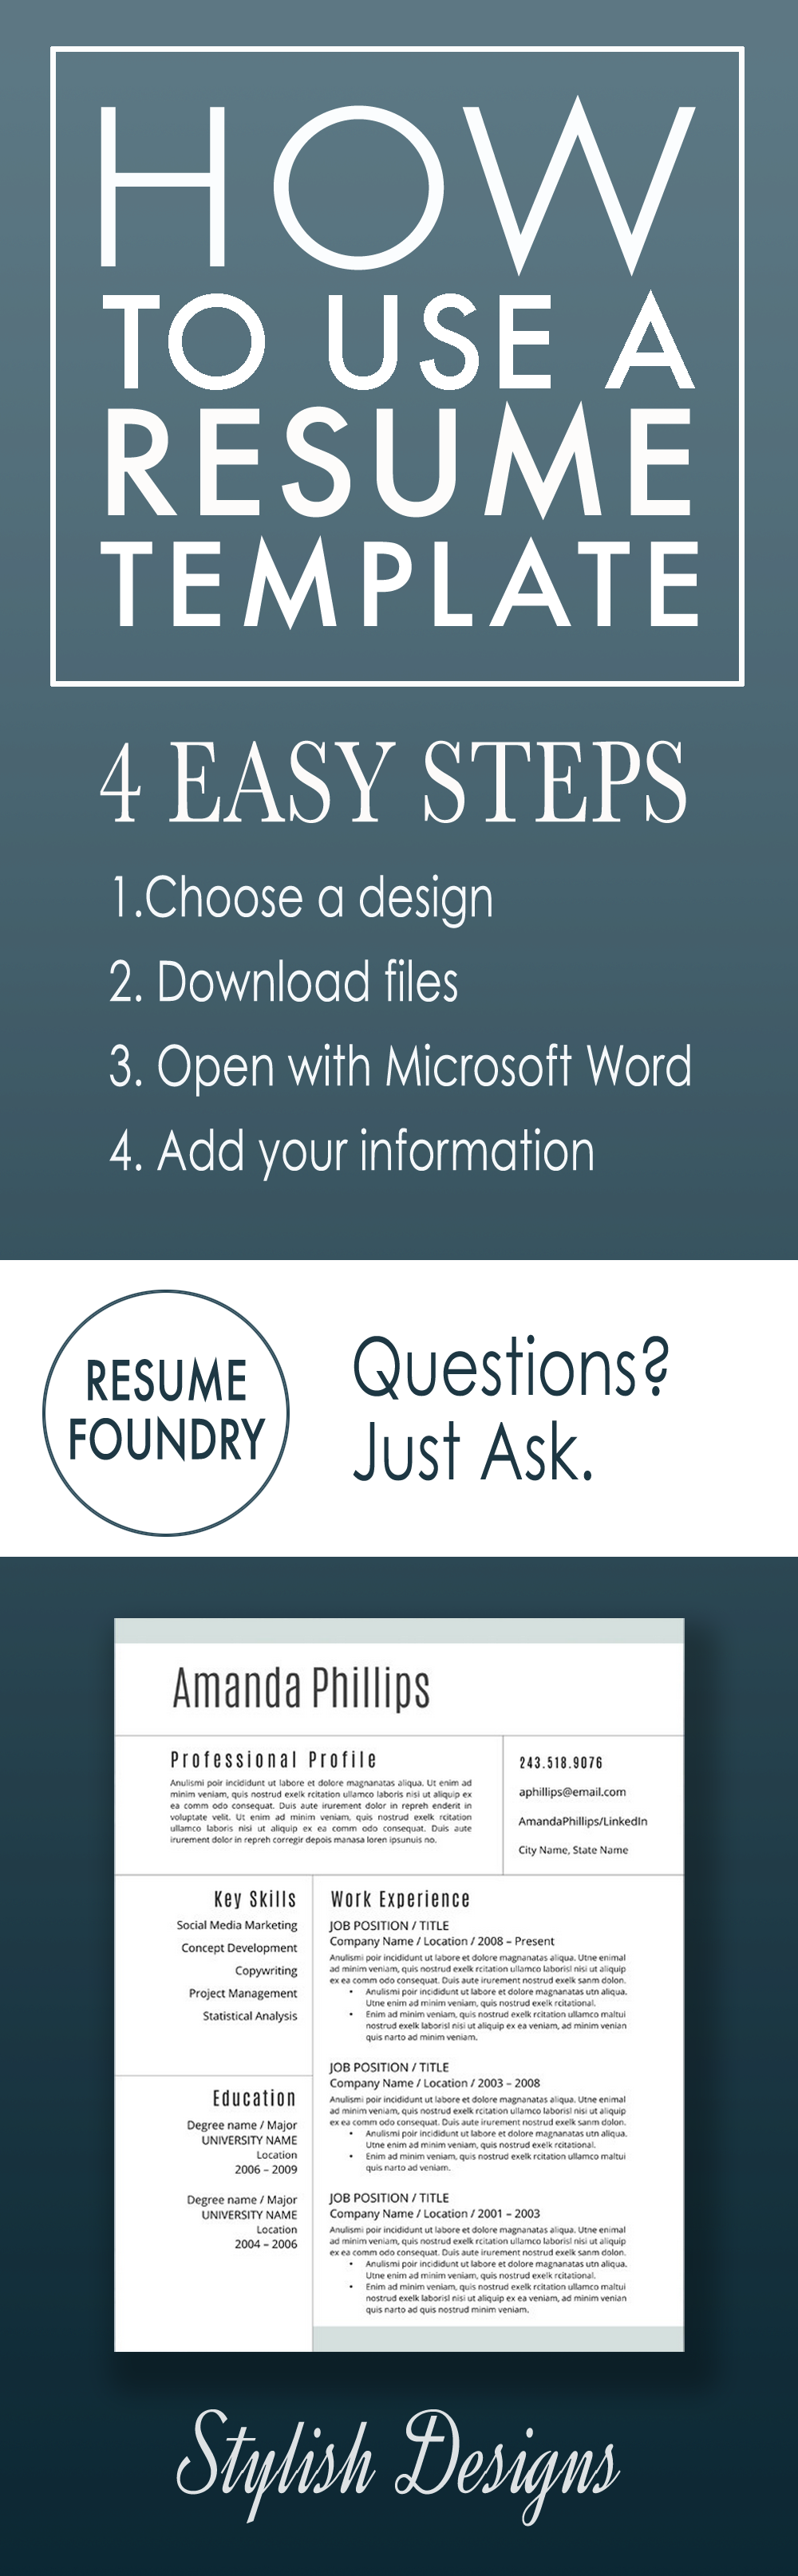 How to fill out a resume template in four easy steps. | Resume ...